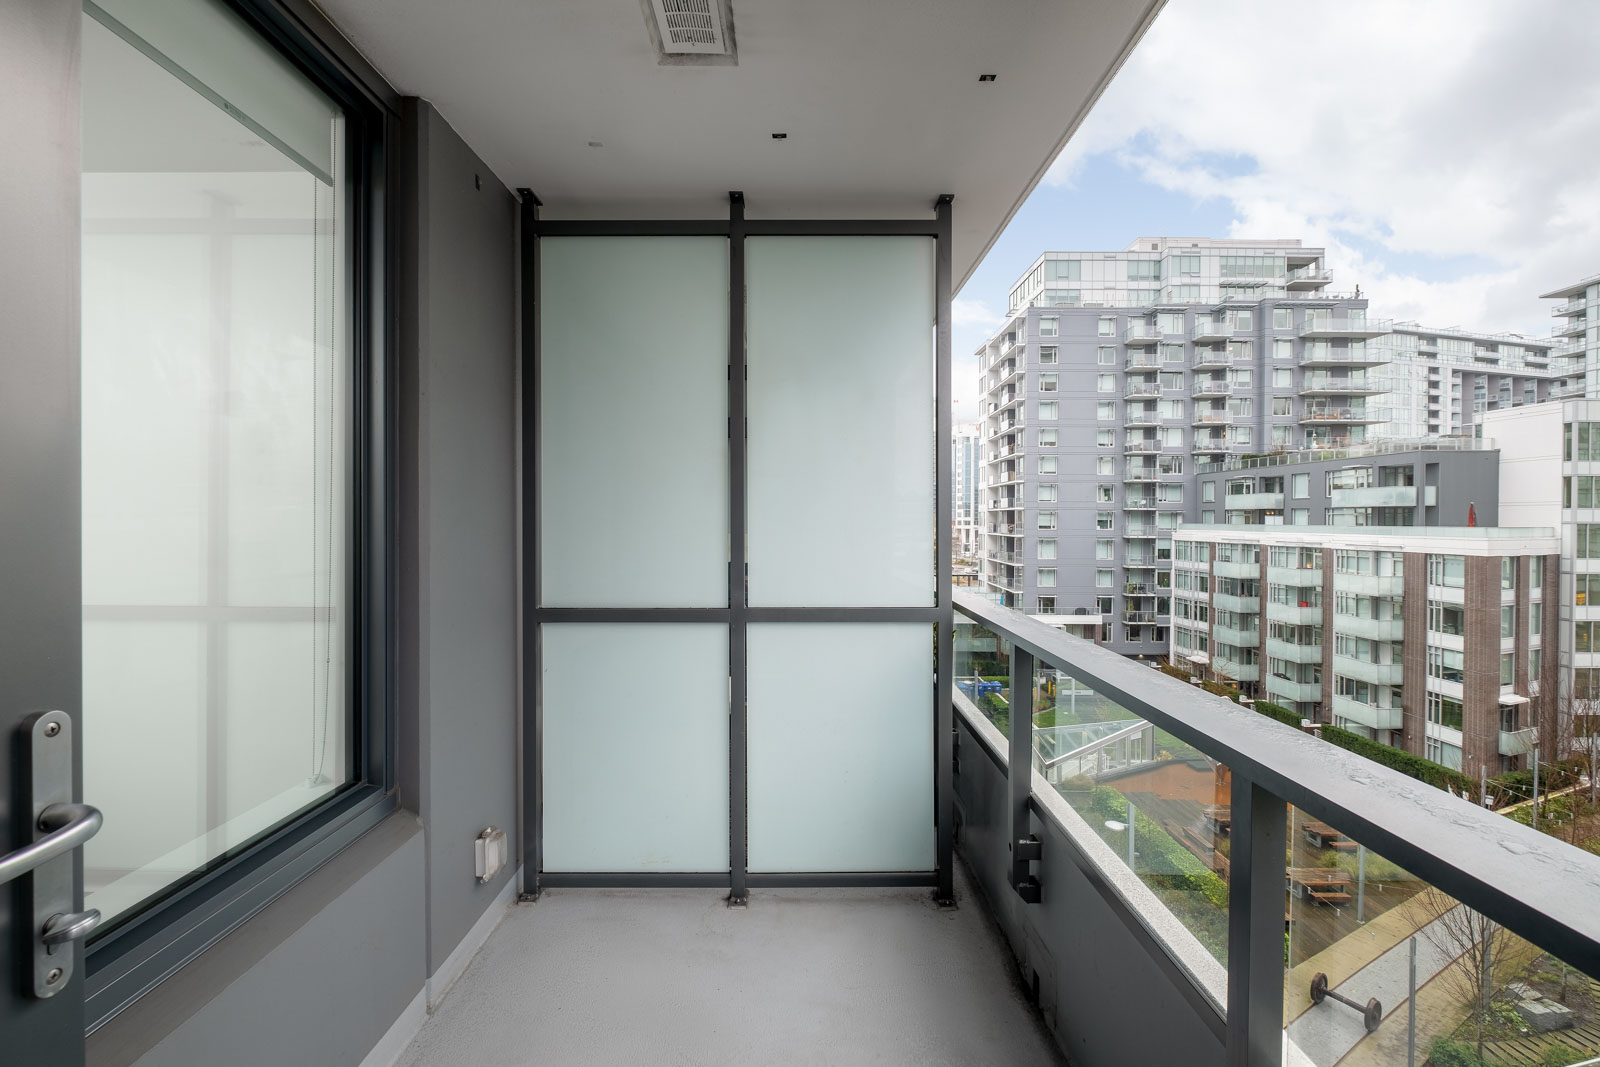 balcony of rental condo with property management by birds nest properties in vancouver canada